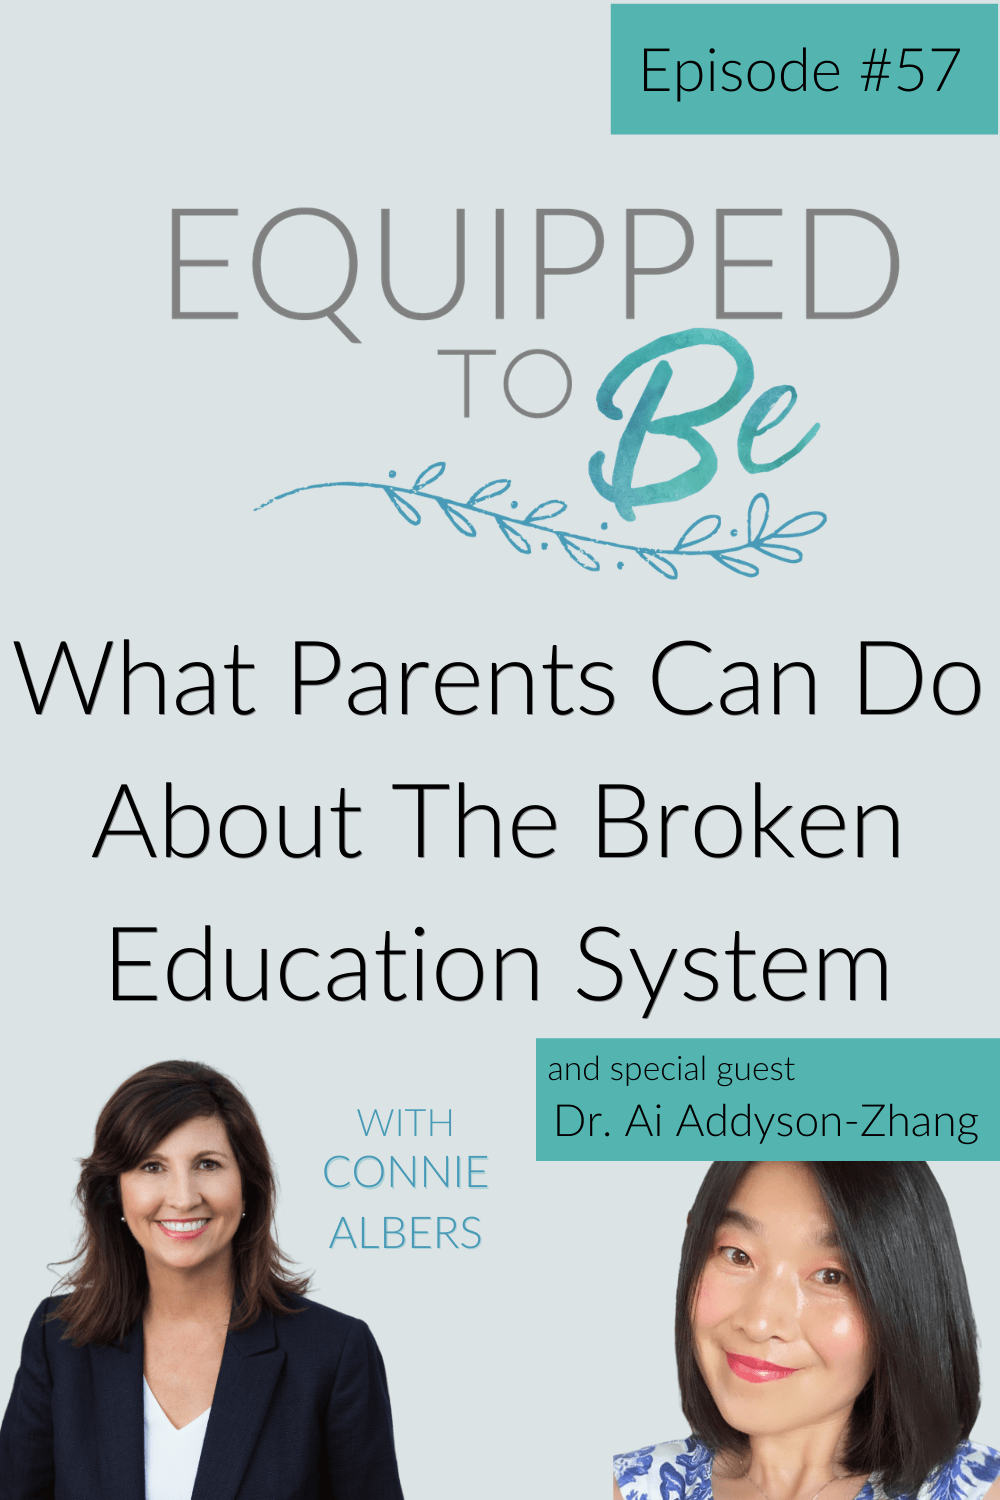 What Parents Can Do About The Broken Education System with Dr. Ai Addyson-Zhang Part 1 - ETB #57